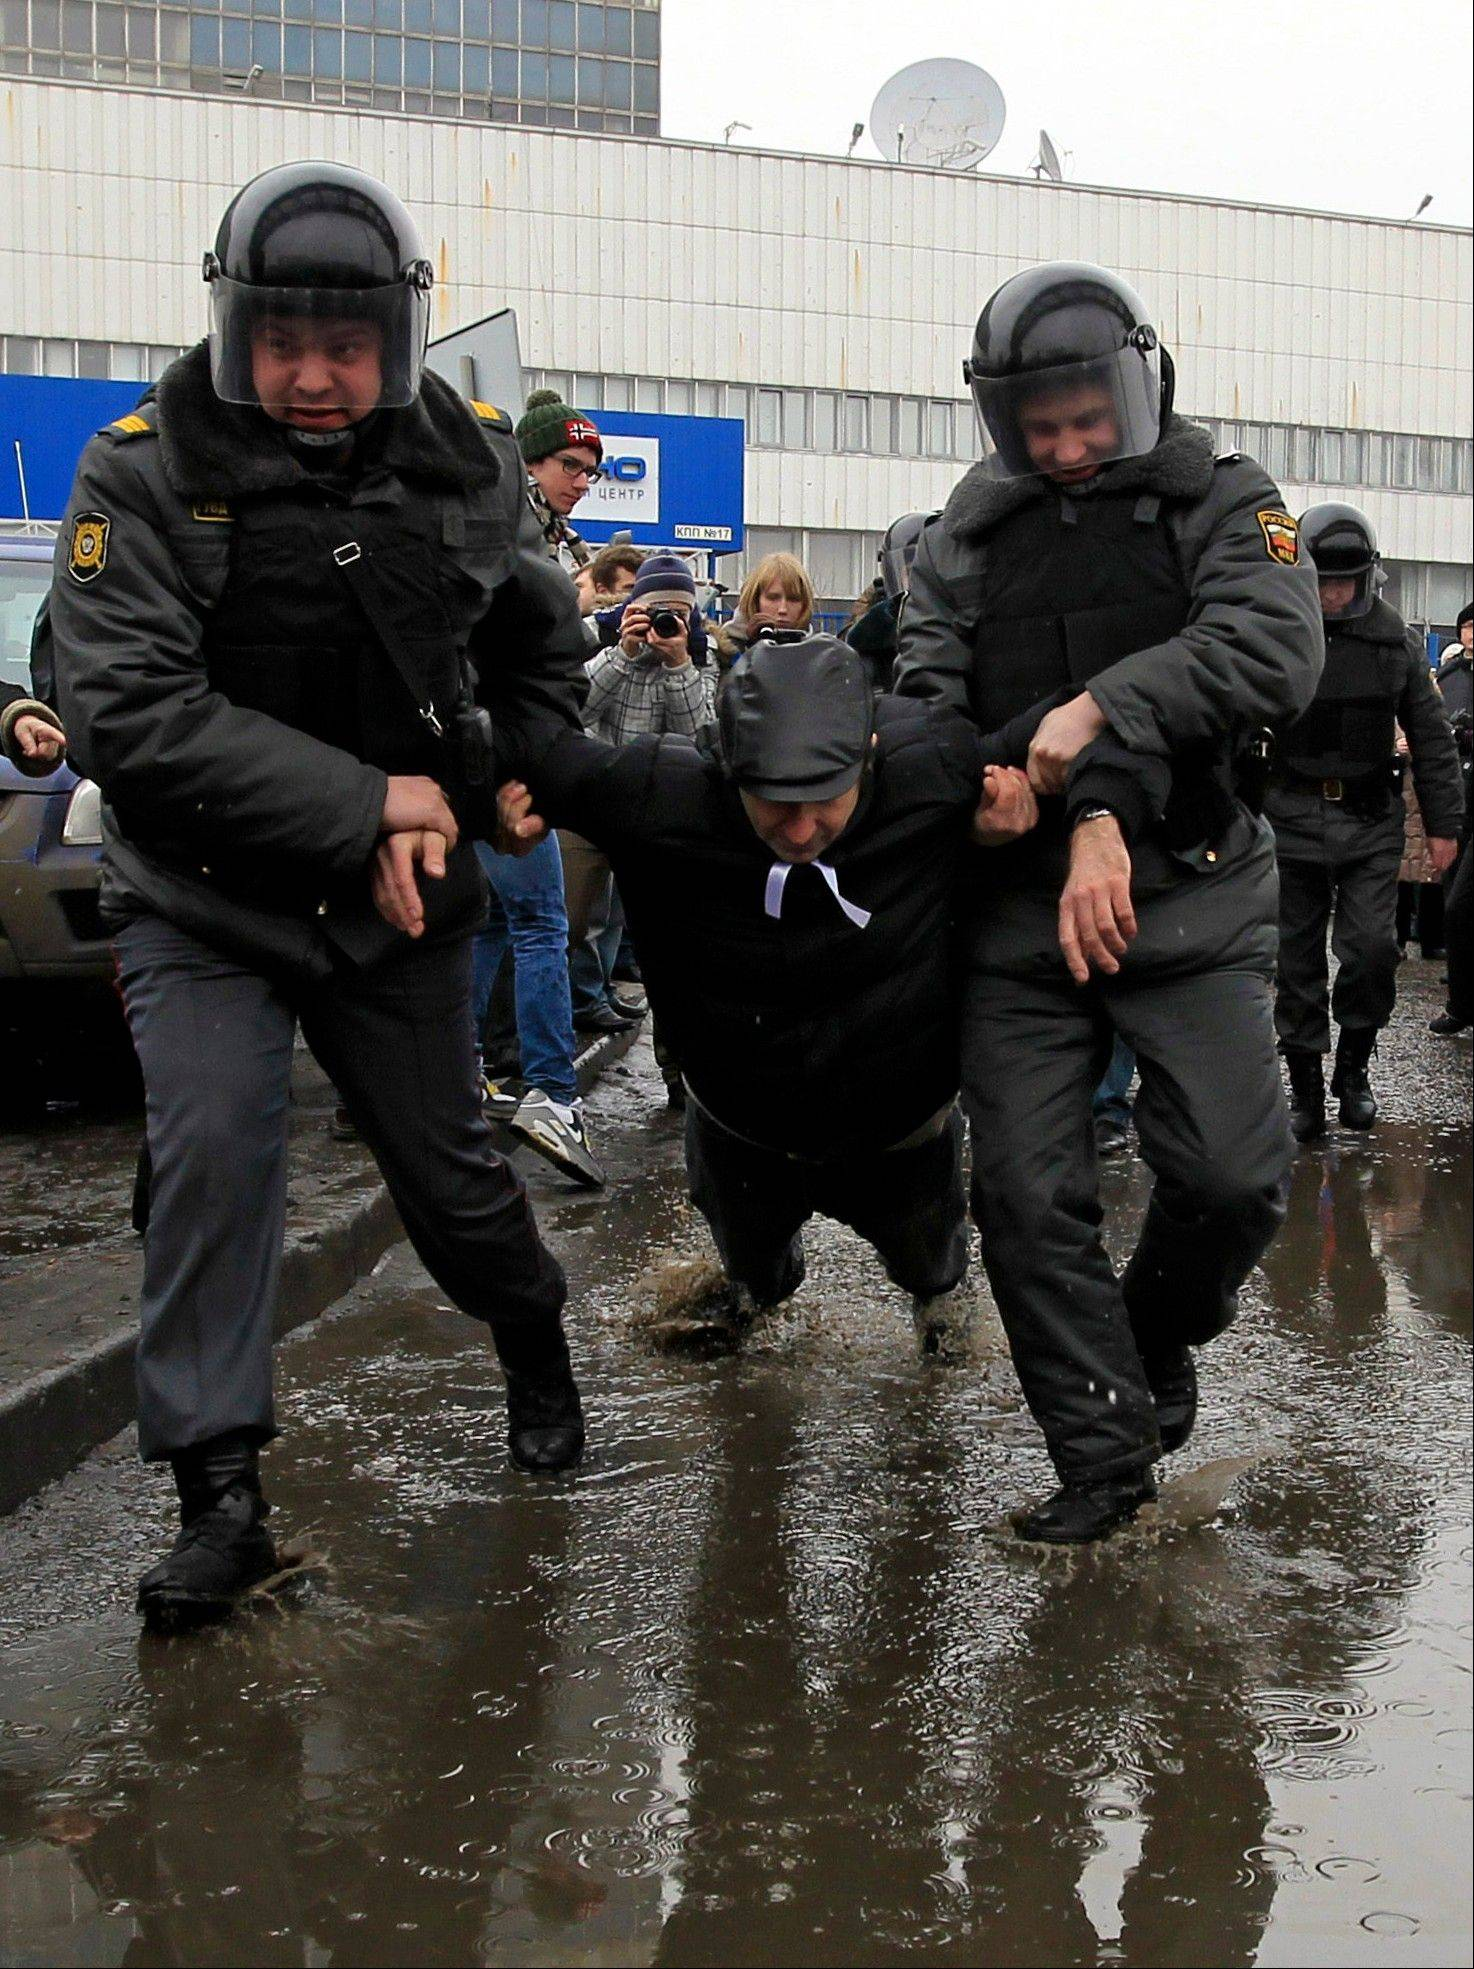 Police officers detain a protester outside the Kremlin-loyal NTV television station in Moscow. Russian opposition and human rights groups on Monday, Nov. 19, 2012, urged Western consumer products giants to stop �financing politically motivated persecution� by advertising on a Kremlin-friendly TV network known for its biased coverage of government critics and demonstrations against President Vladimir Putin.